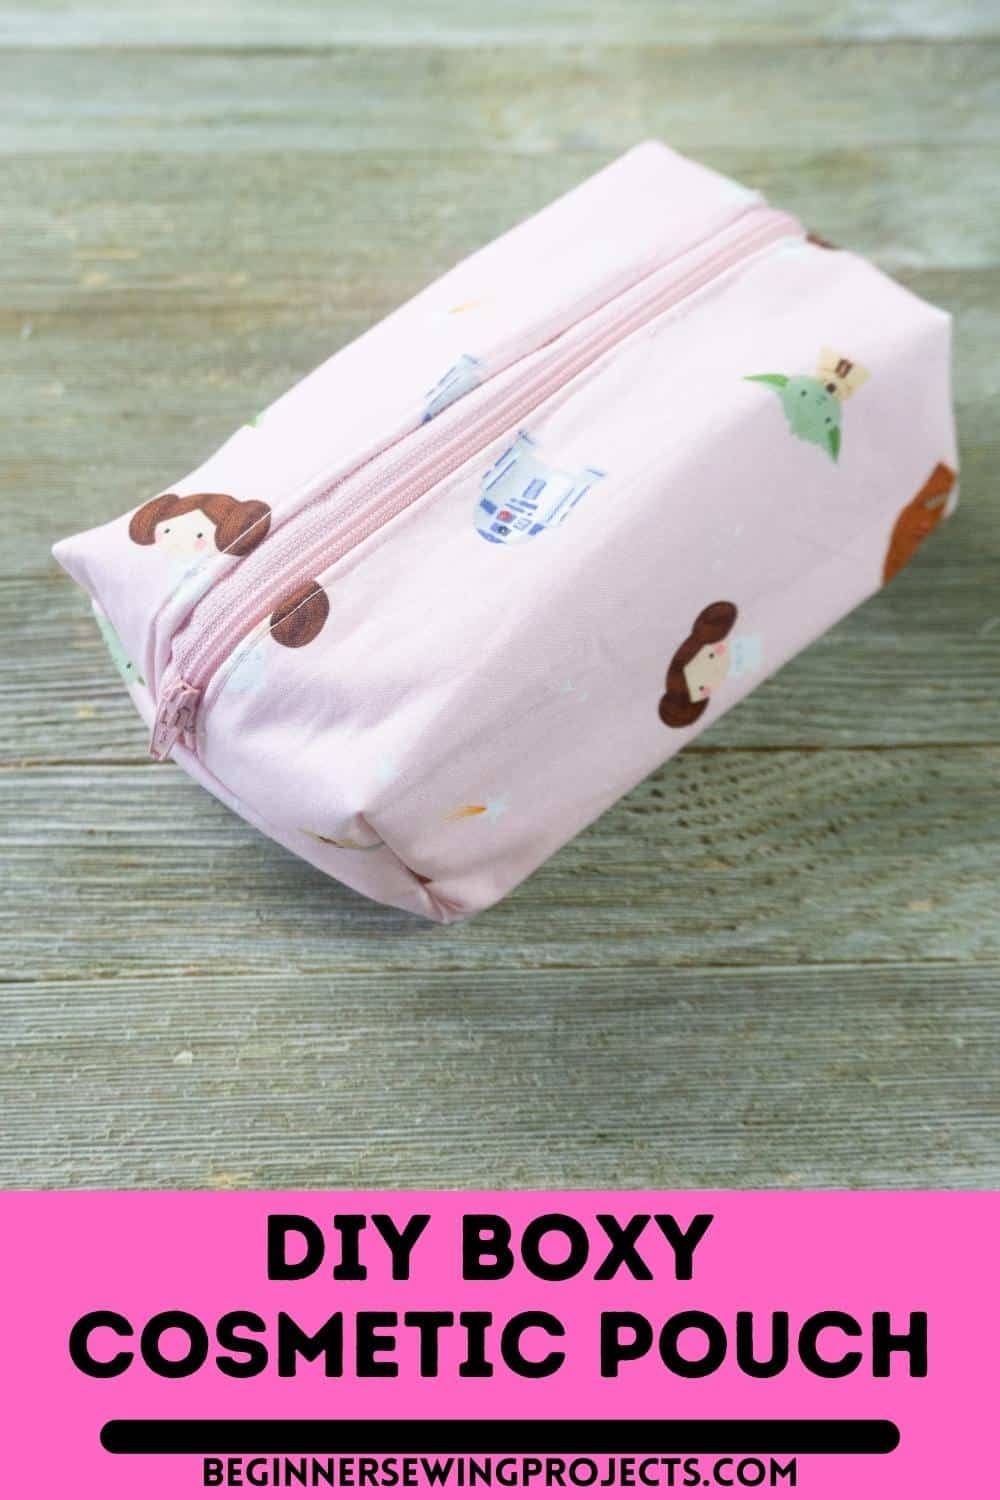 DIY Boxy Cosmetic Pouch